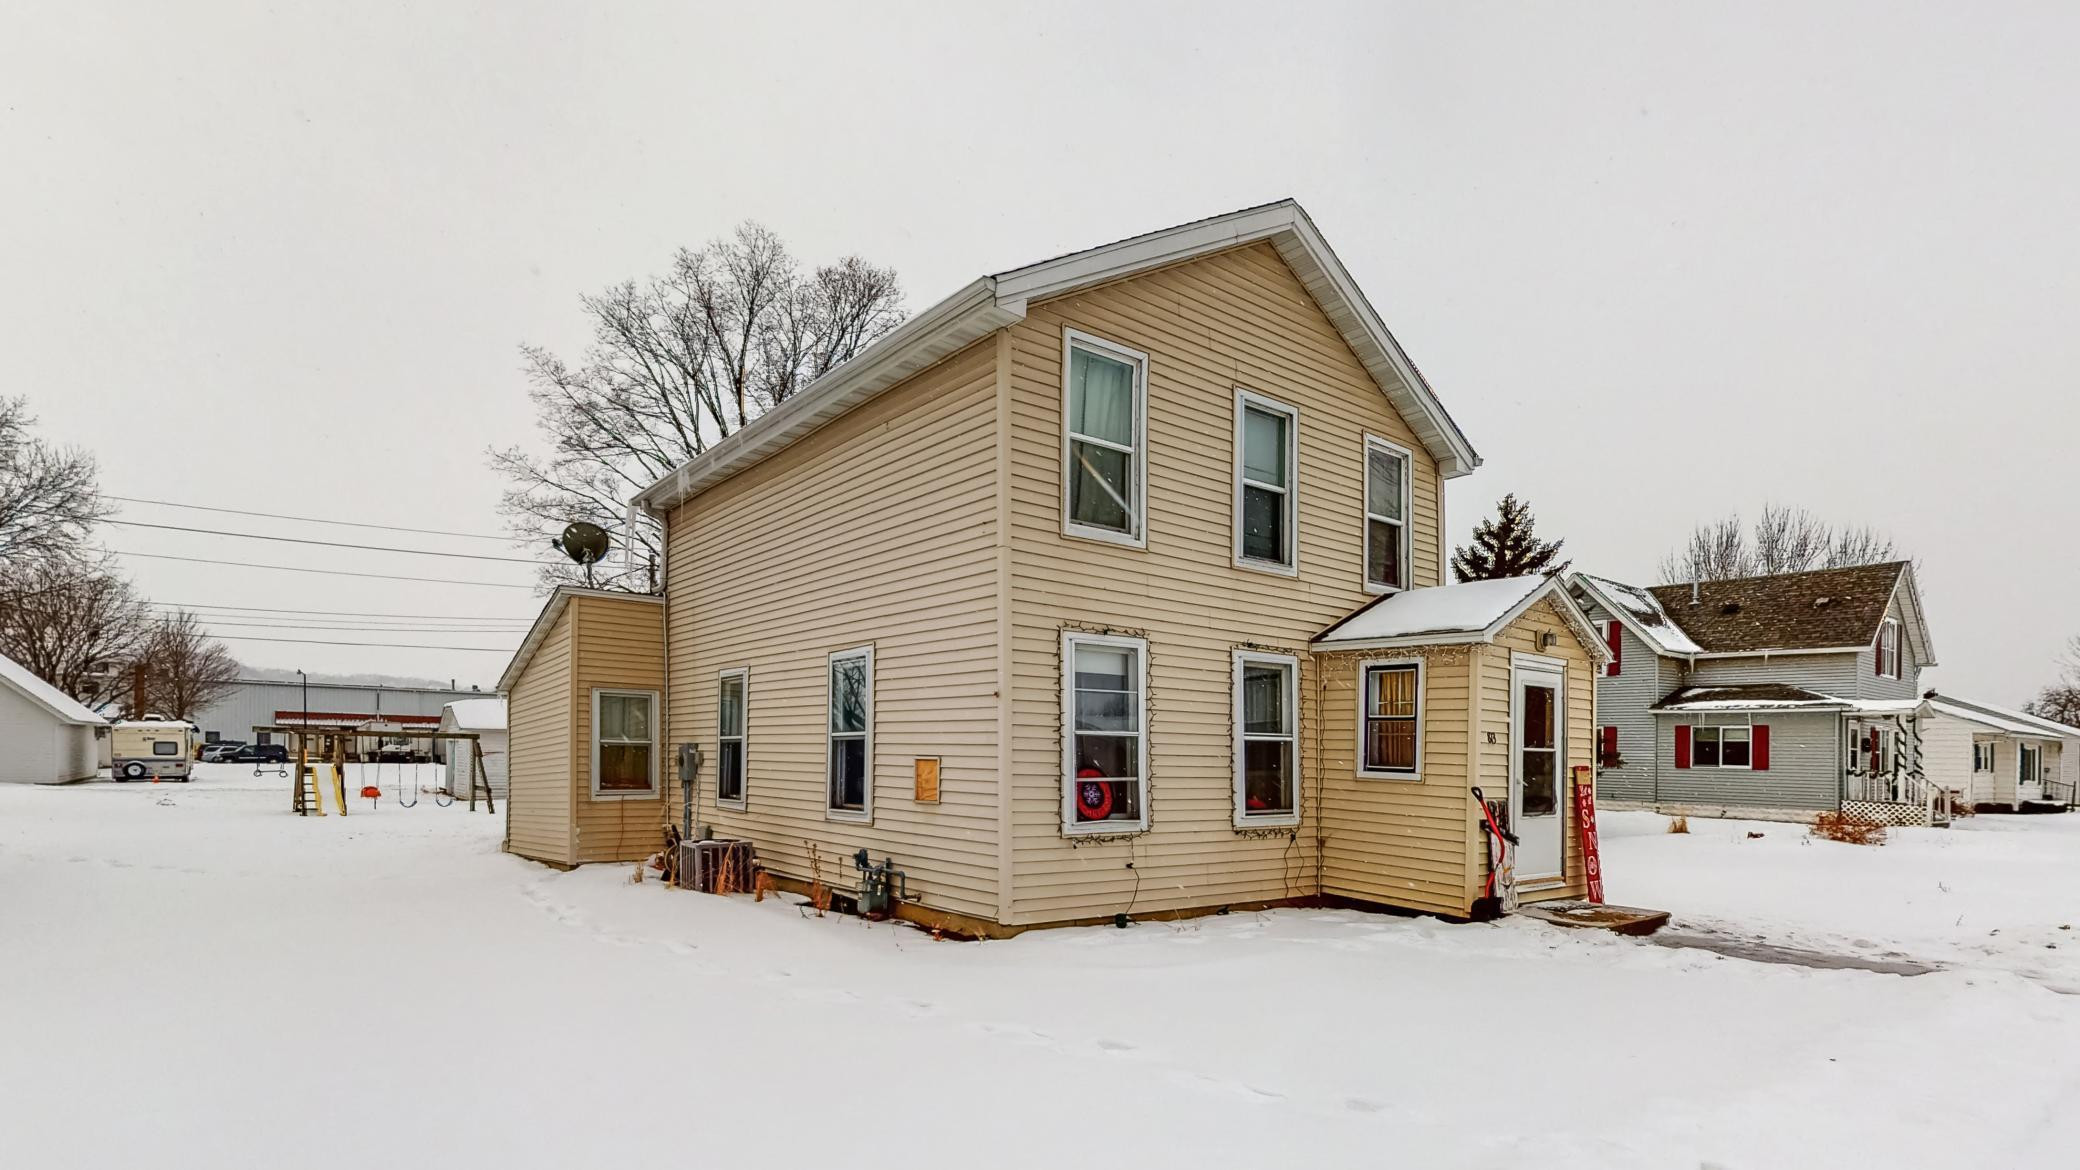 813 N 6th Street, Lake City, MN 55041